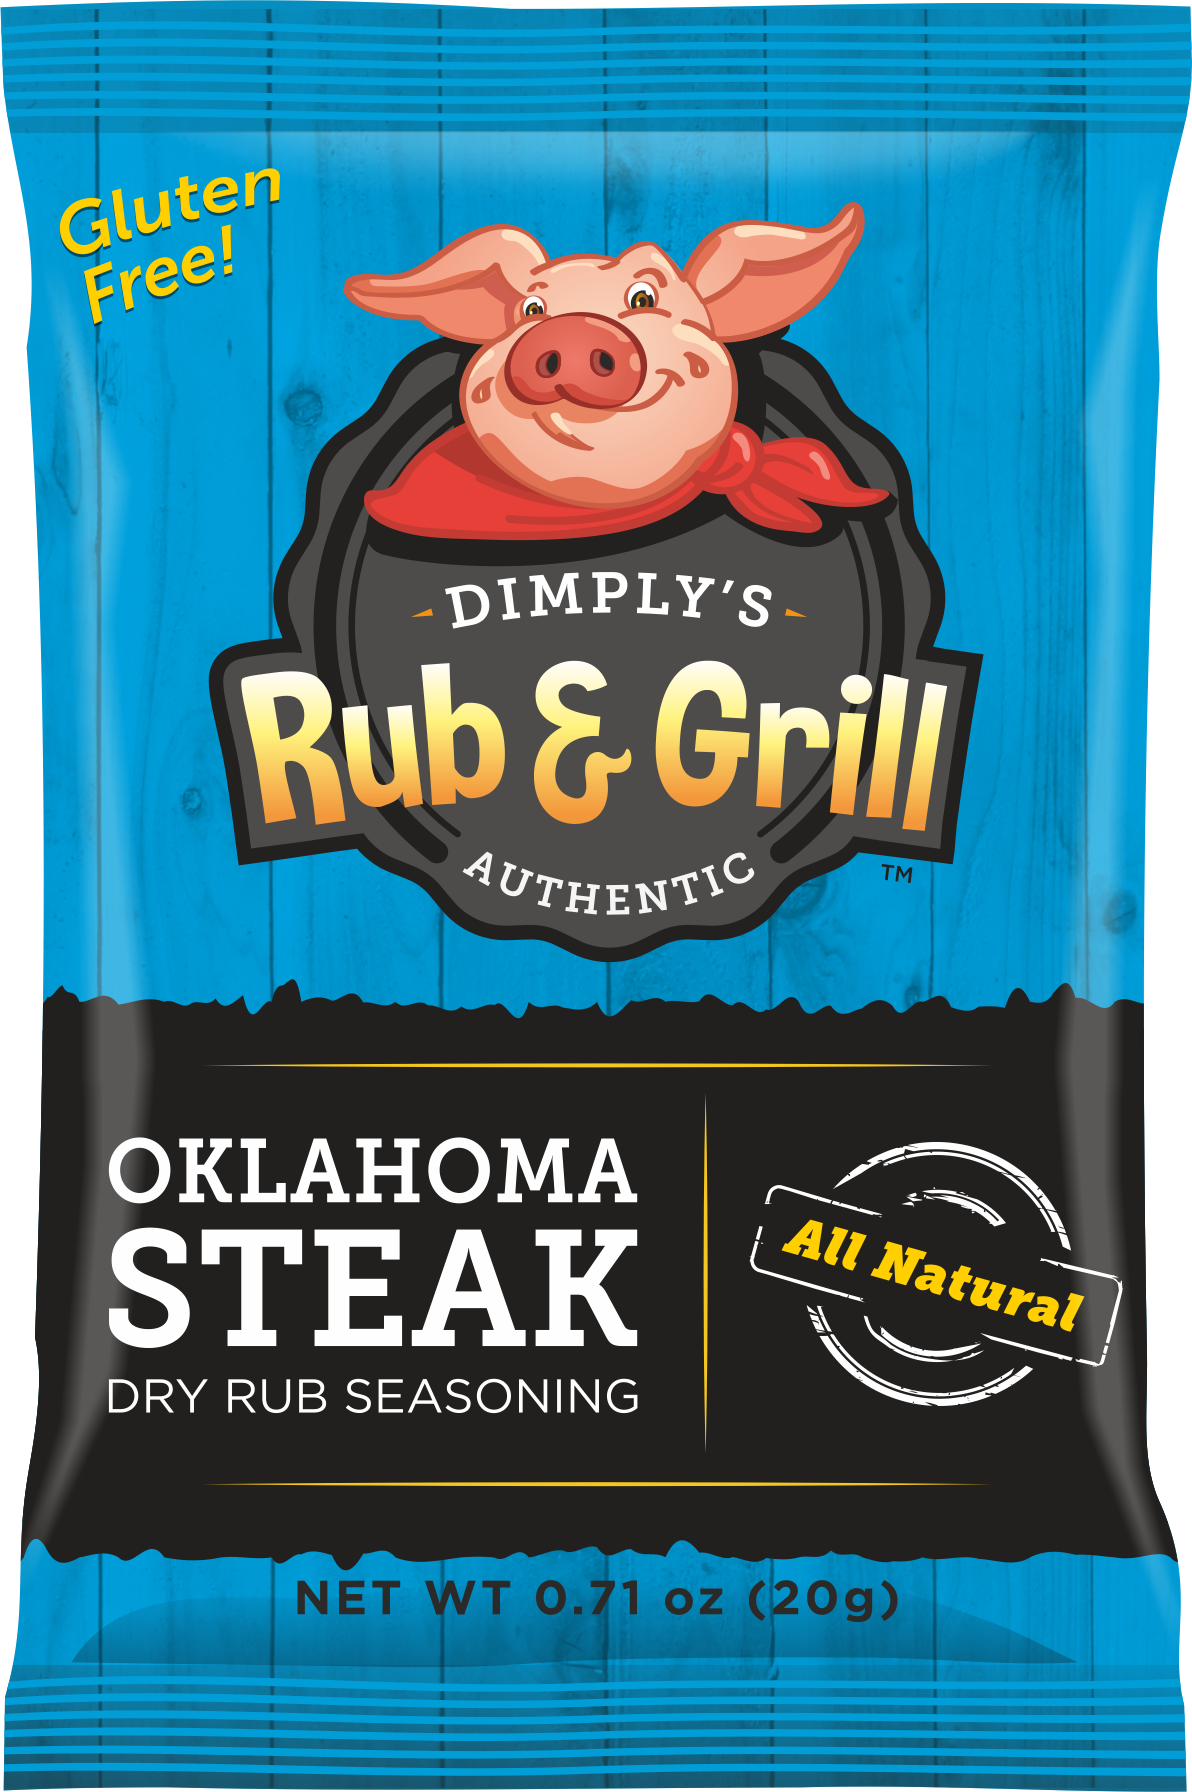 Oklahoma Steak Dry Rub Seasoning